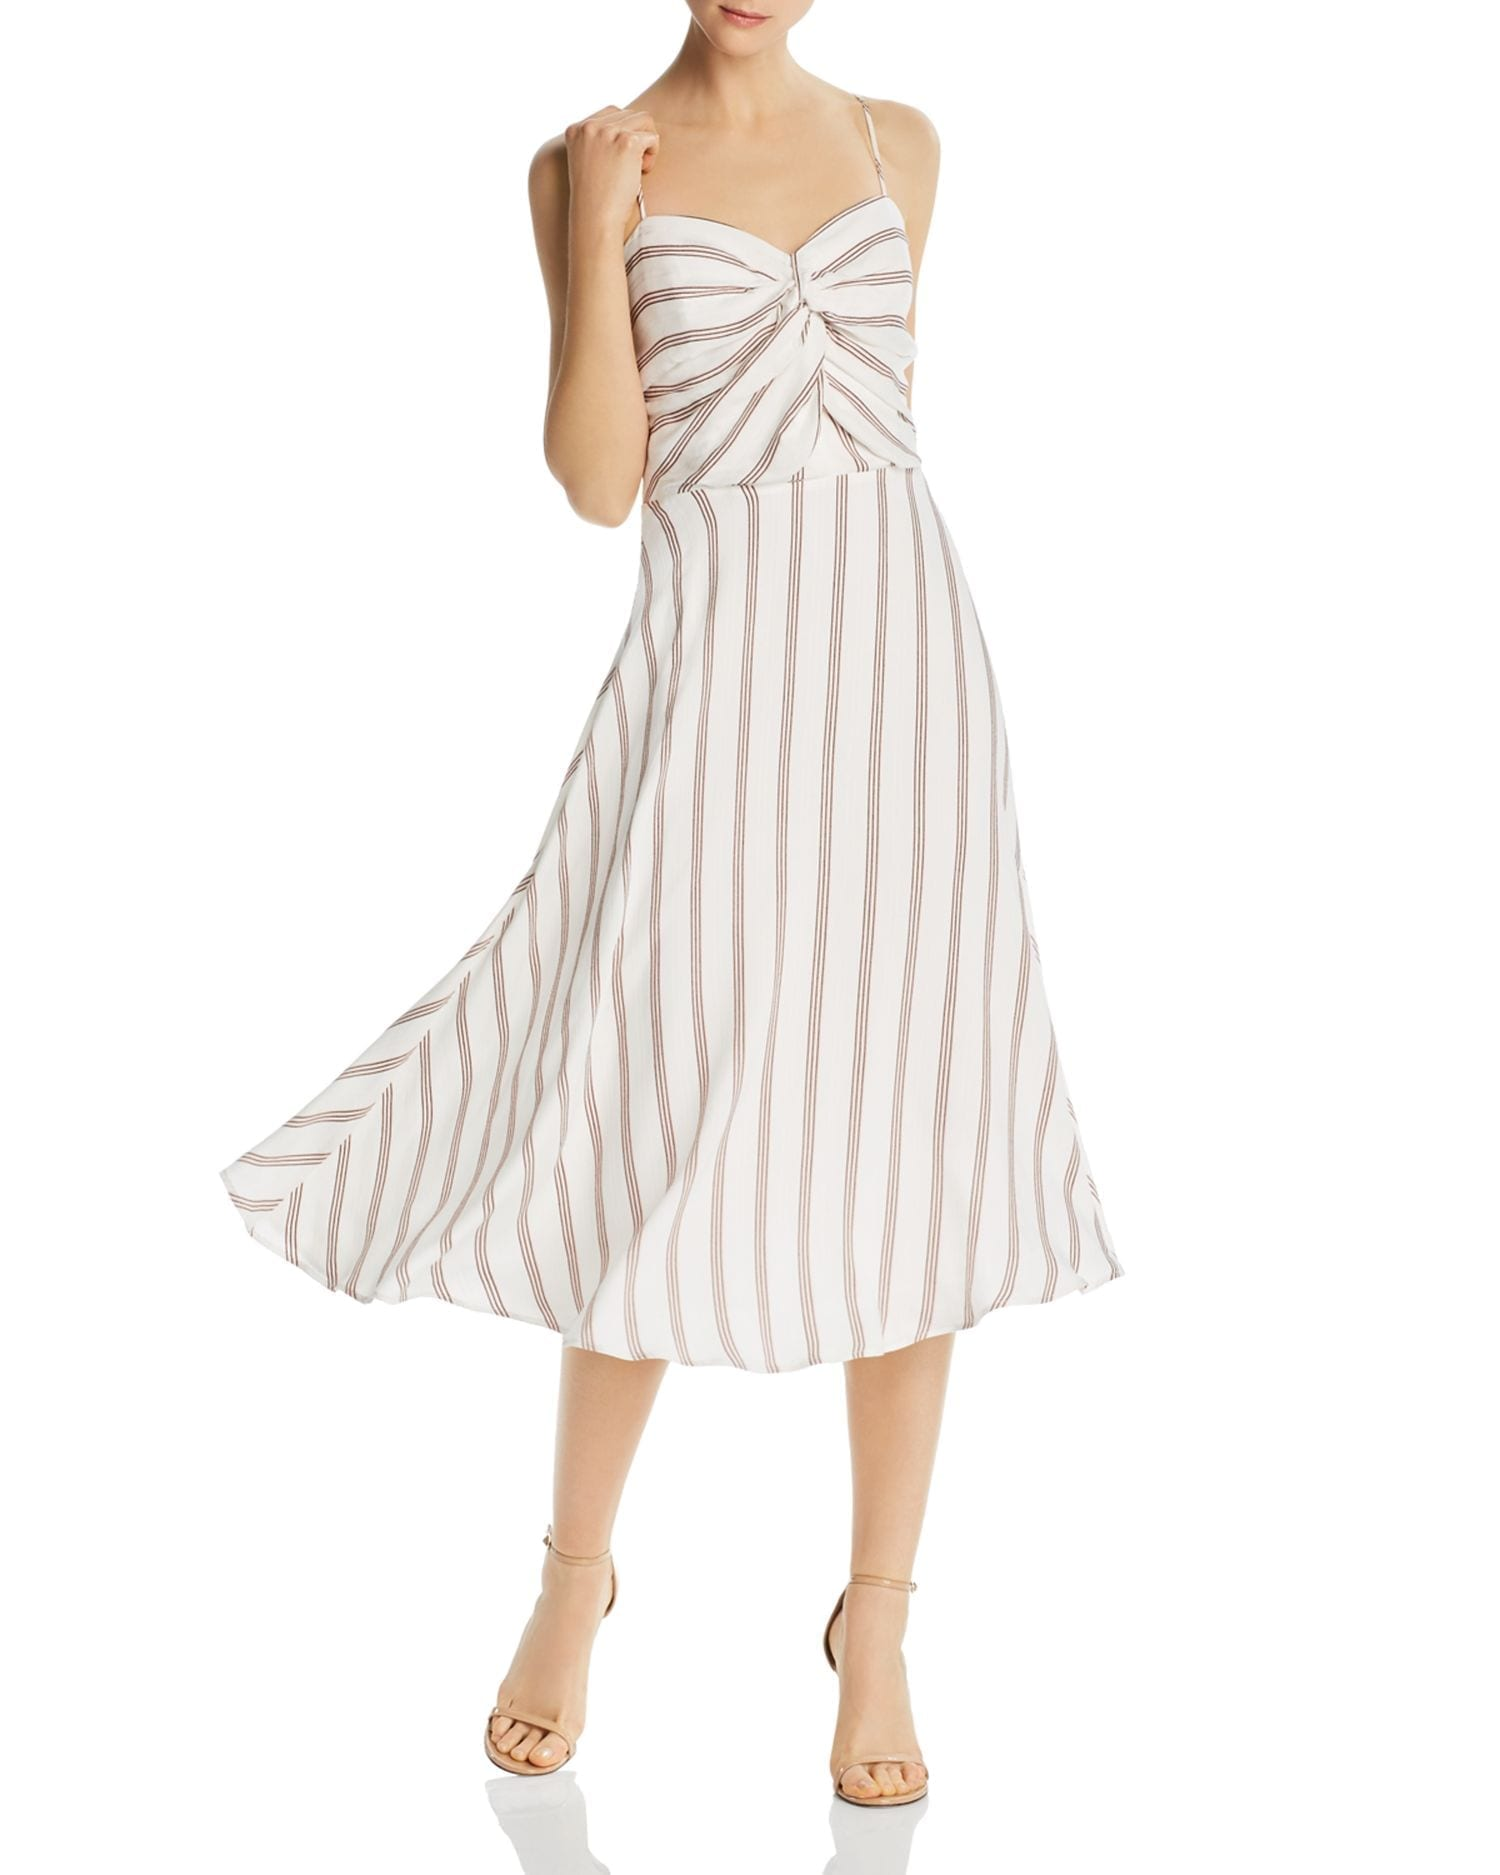 JOIE Chalten Striped Dress